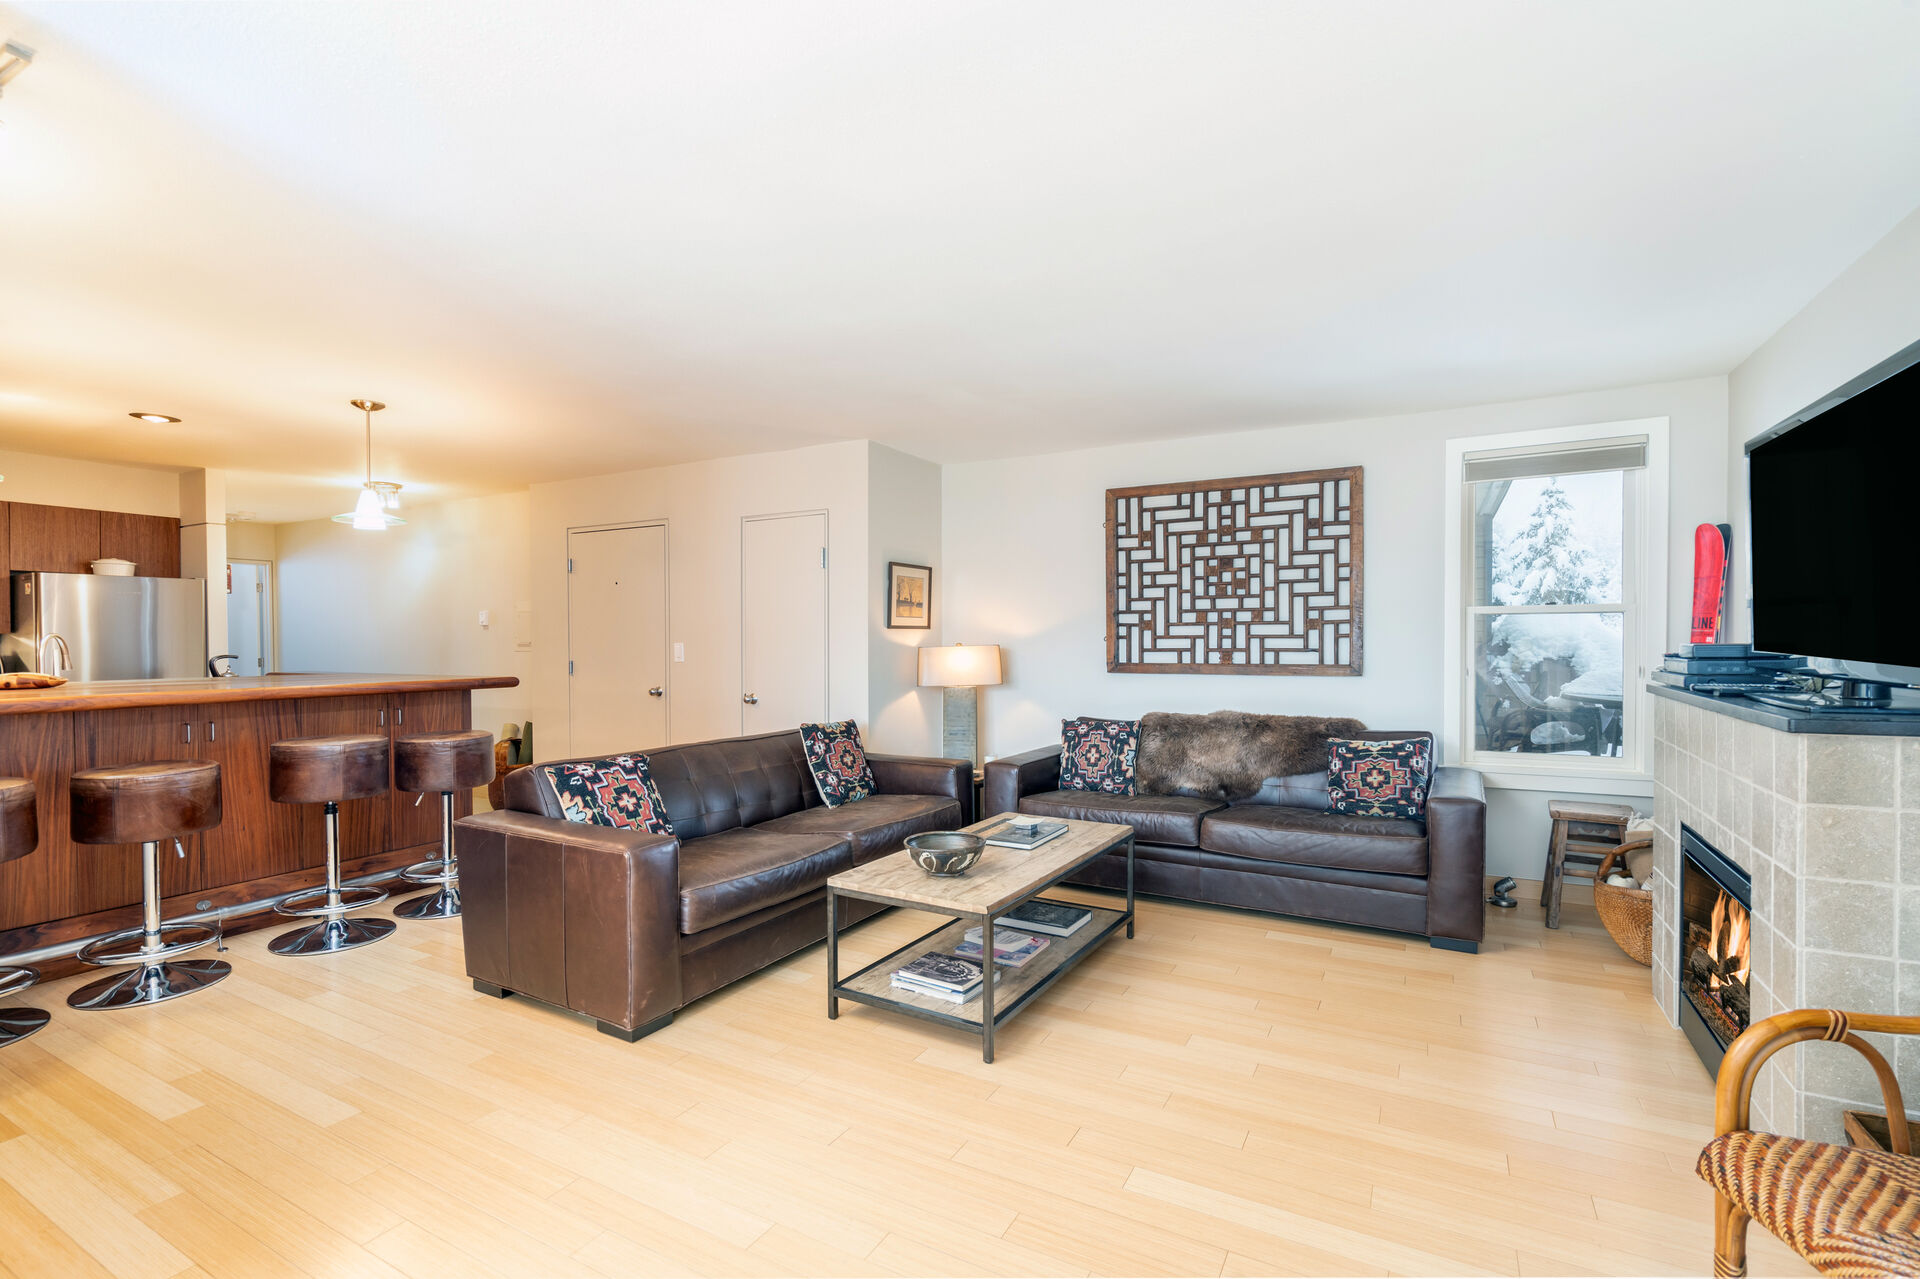 Living room with two couches and tv at this Telluride condo for rent.